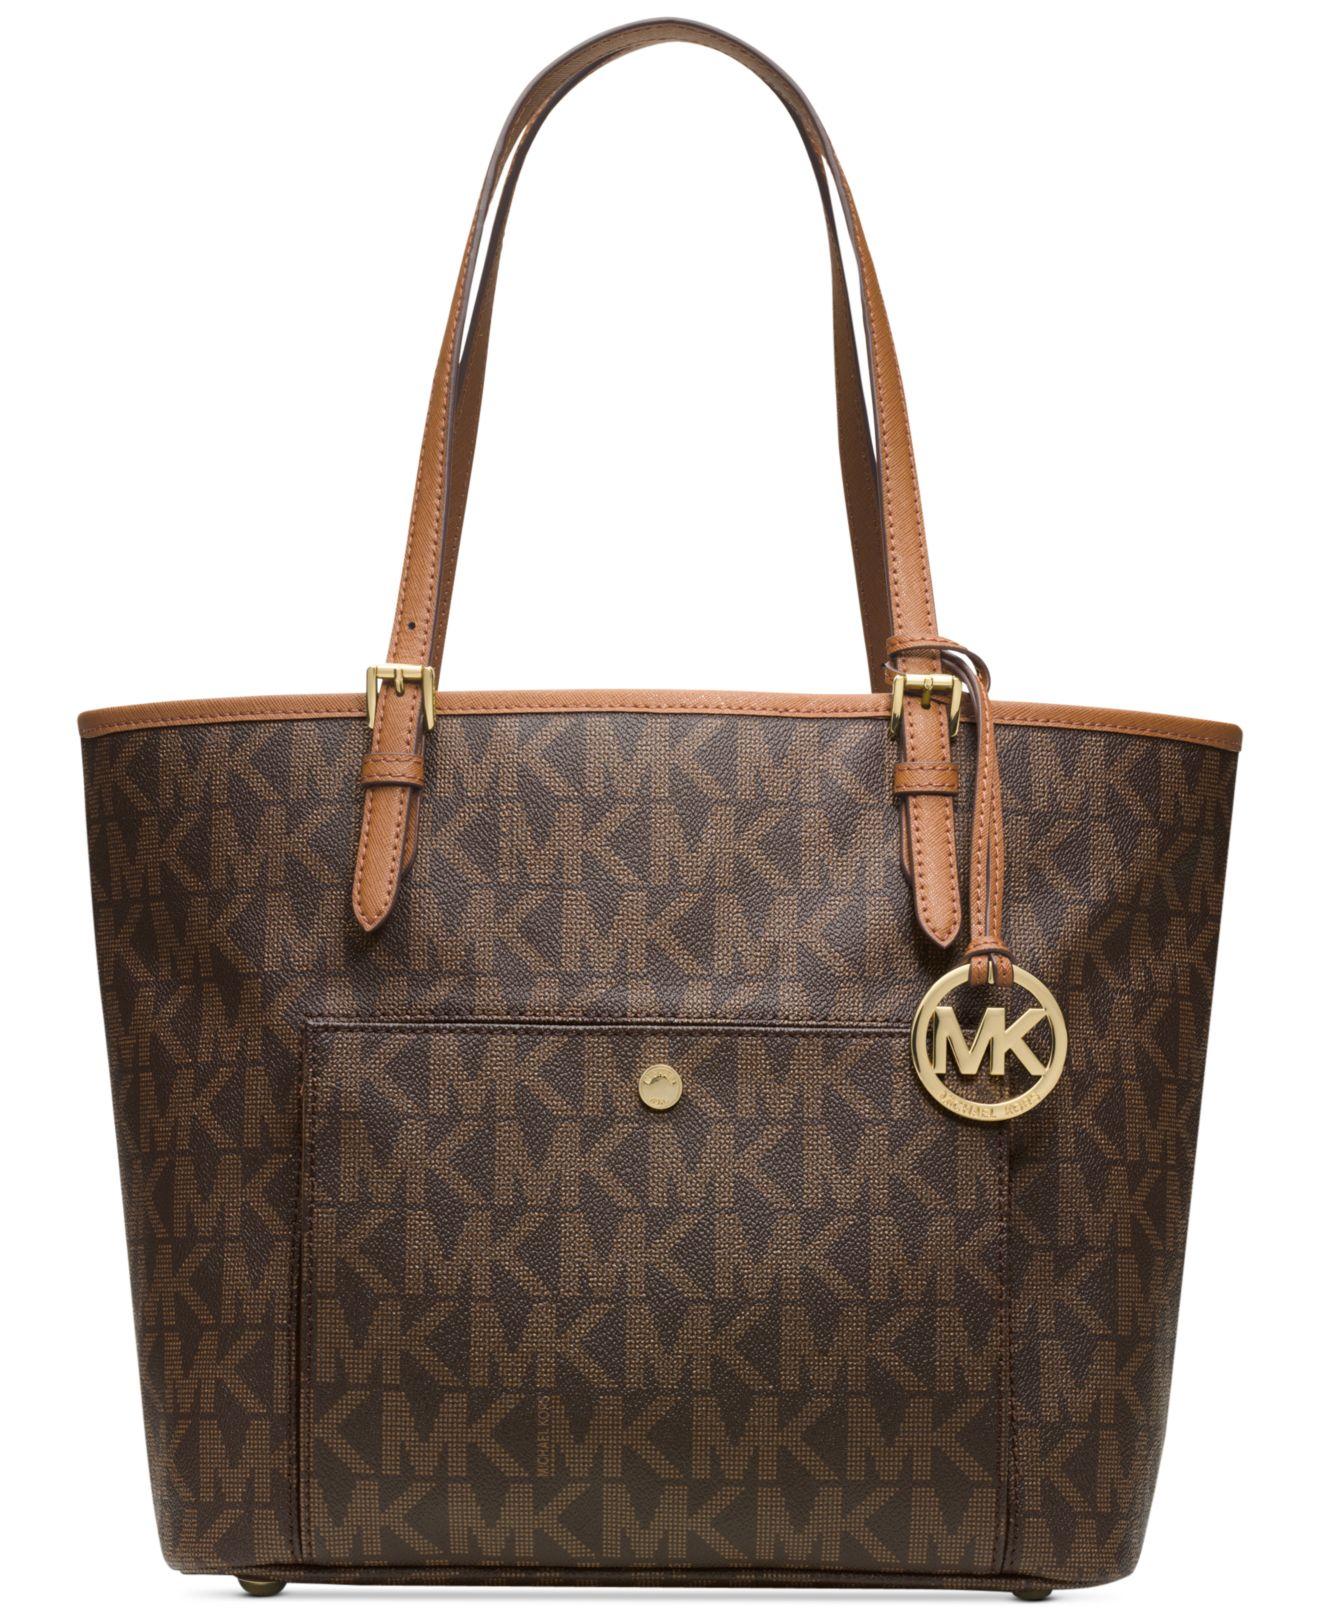 The company sells its products under the names of MICHAEL KORS, MICHAEL MICHAEL KORS, JIMMY CHOO, and various other trademarks and logos. Michael Kors Holdings Limited was founded in and is based in London, the United Kingdom.